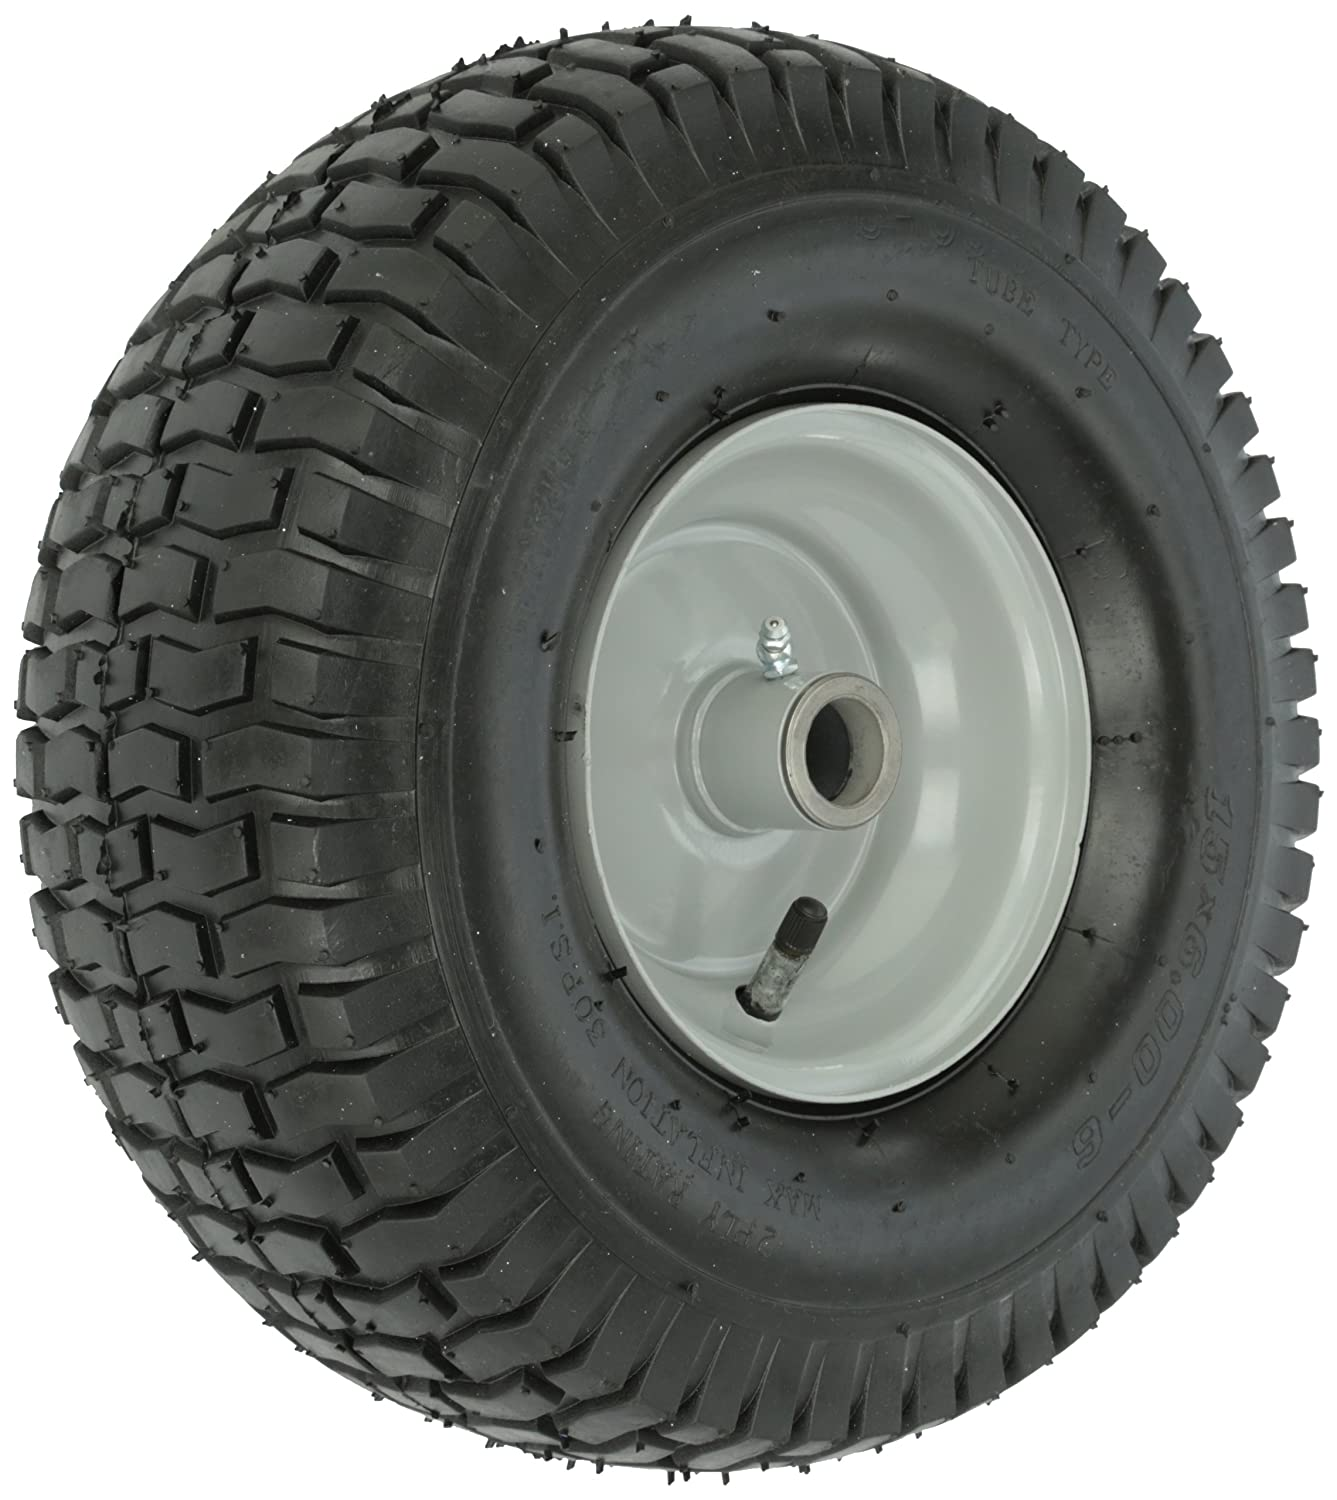 Agri-Fab 42159 Wheel, 15 by 6.00, Gray